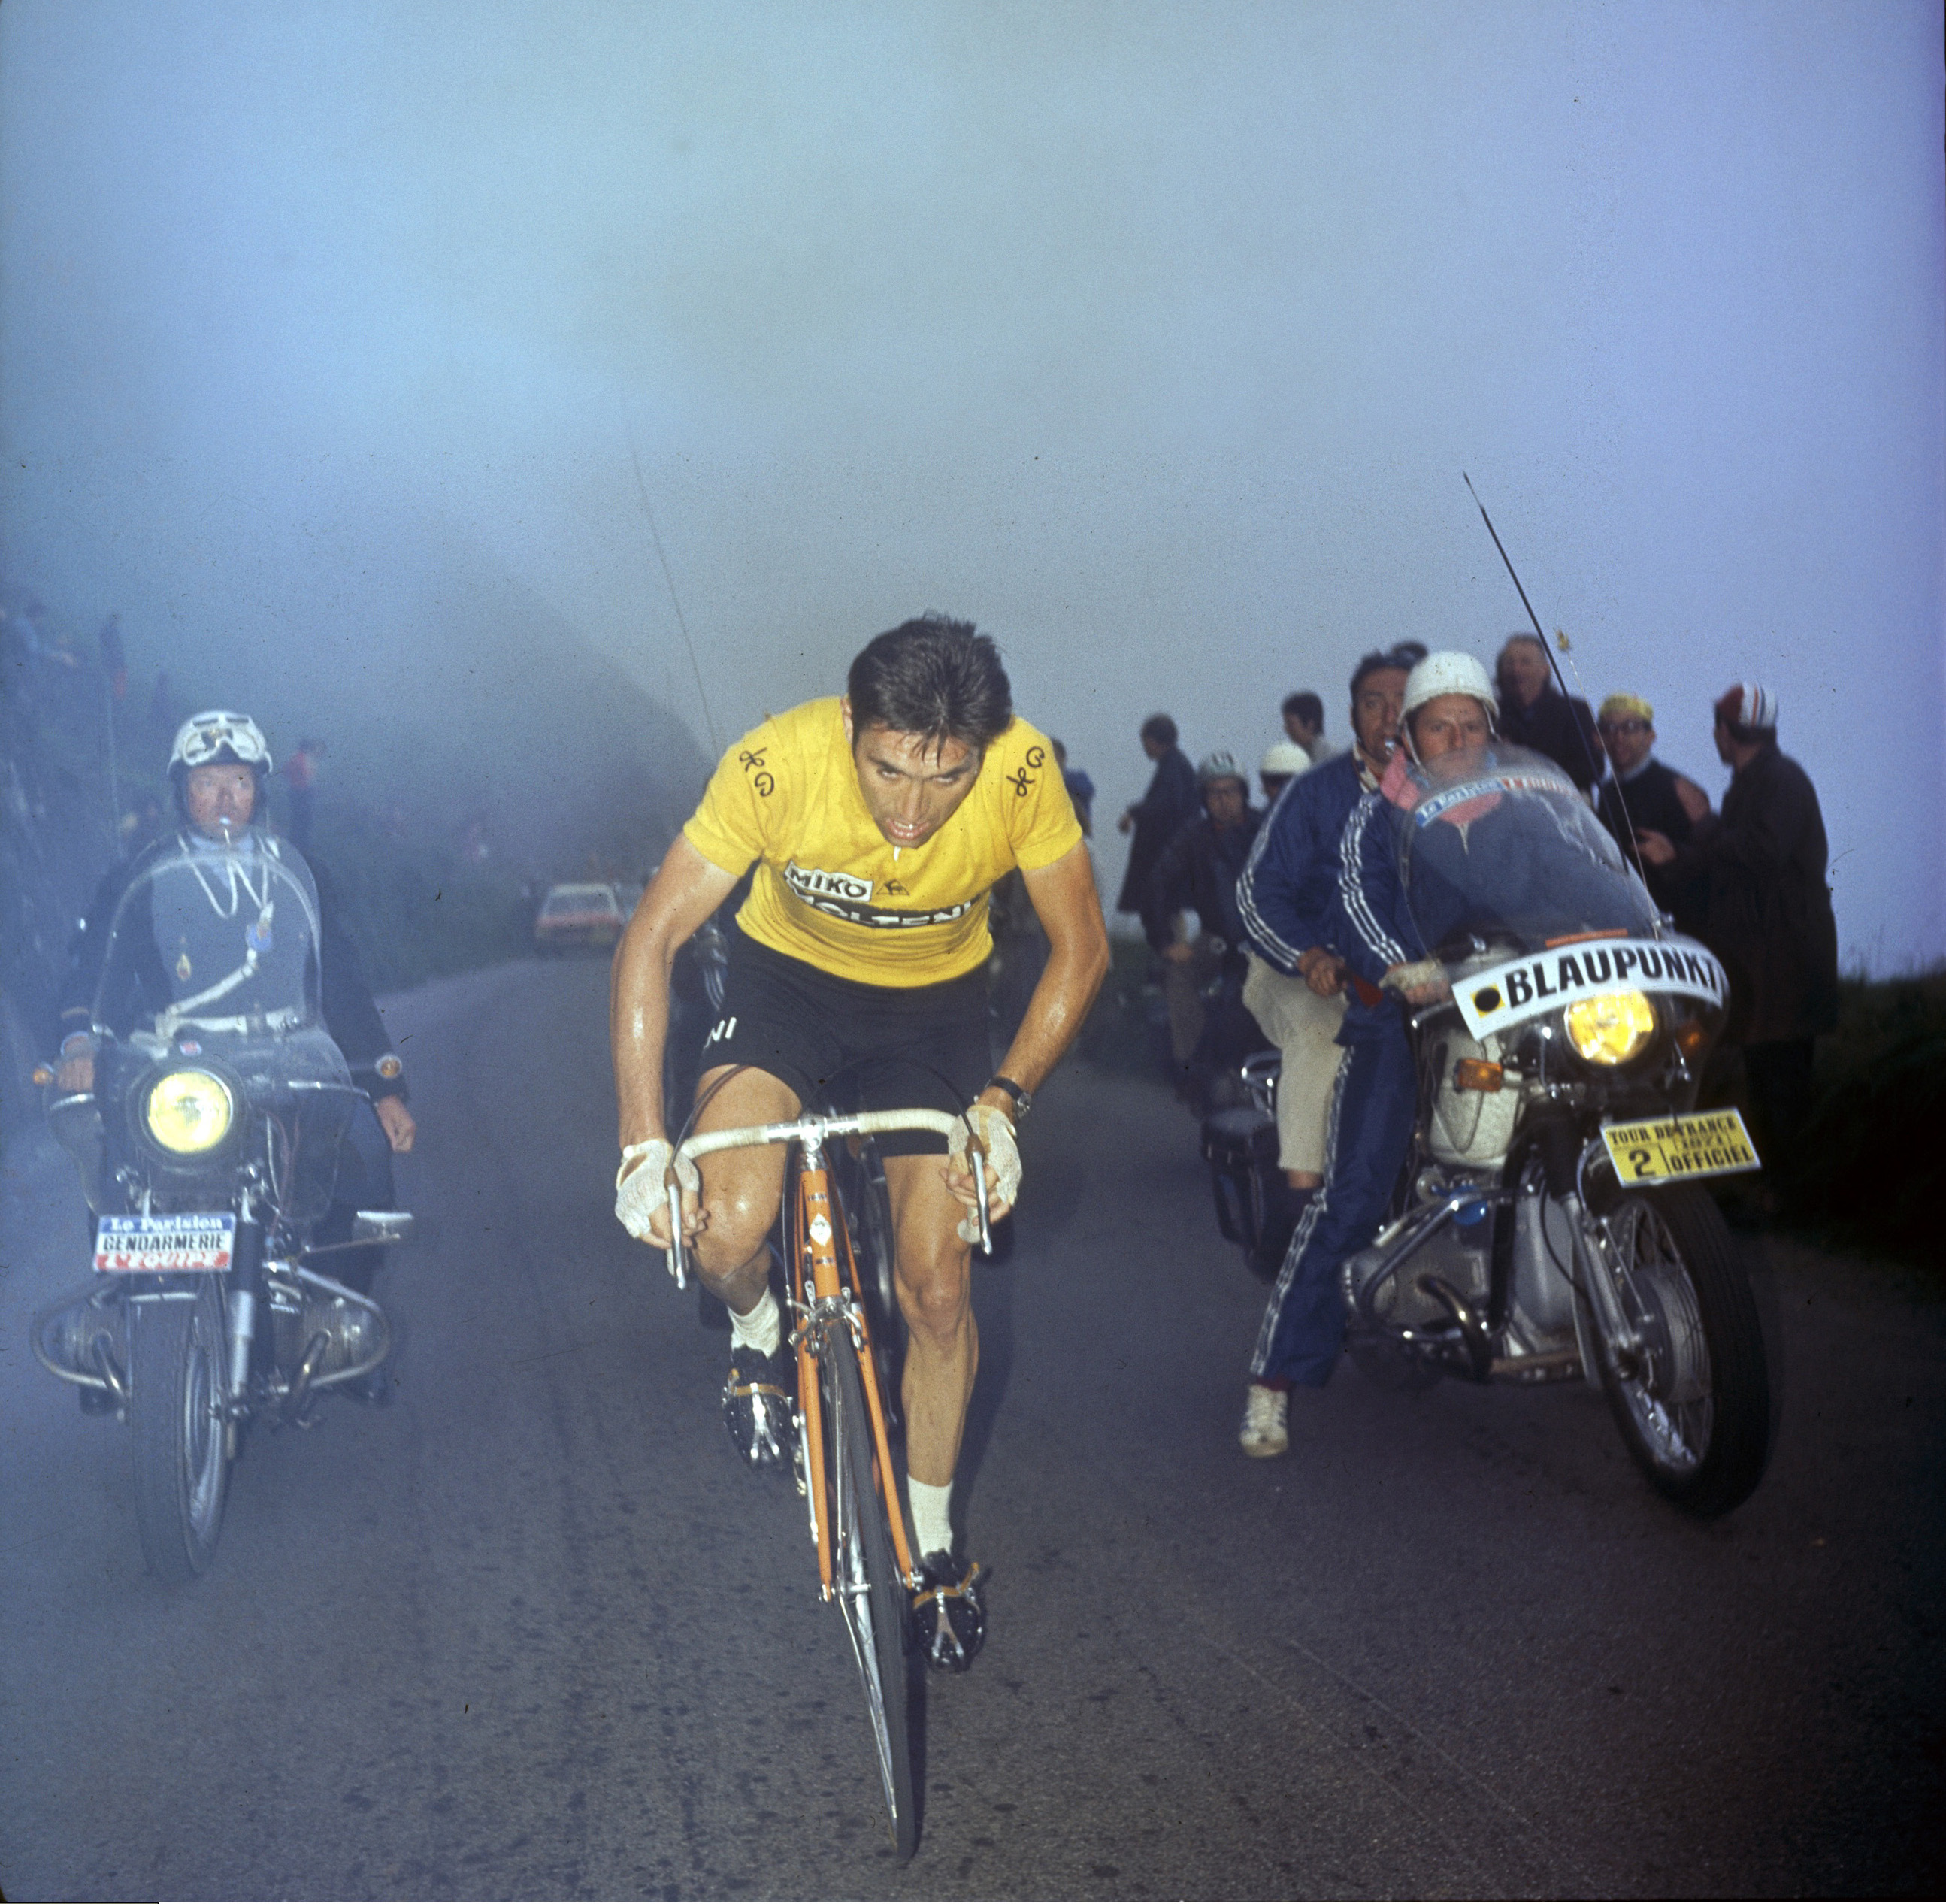 Eddy Merckx in the yellow jersey at the 1971 Tour de France